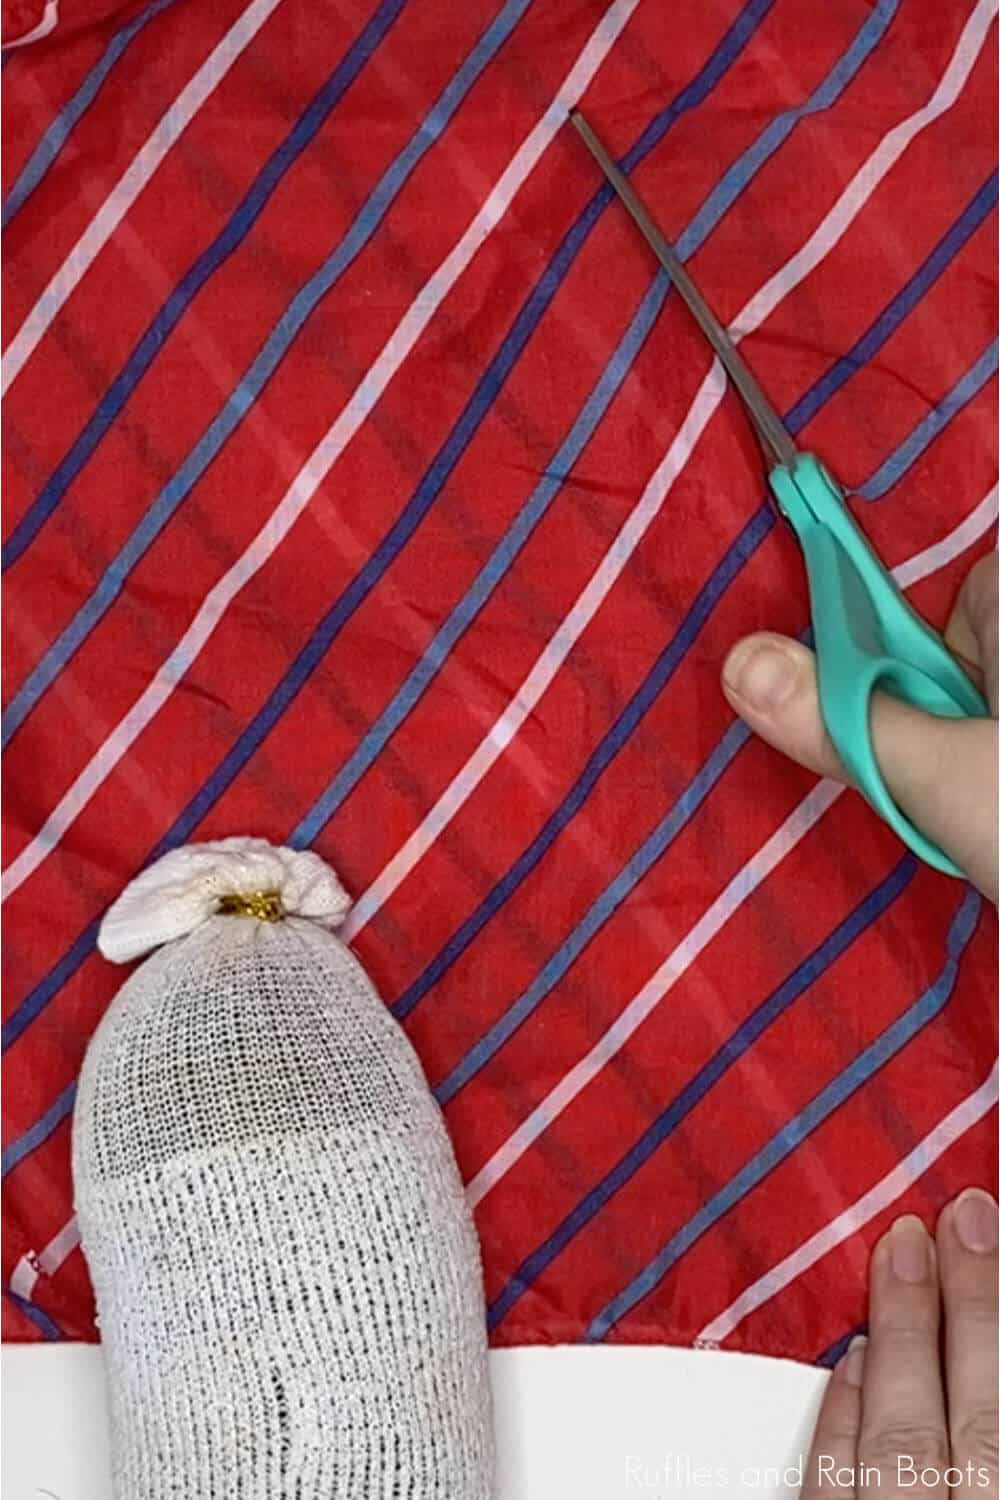 in-process step of cutting fabric to make a dollar store gnome for july 4th